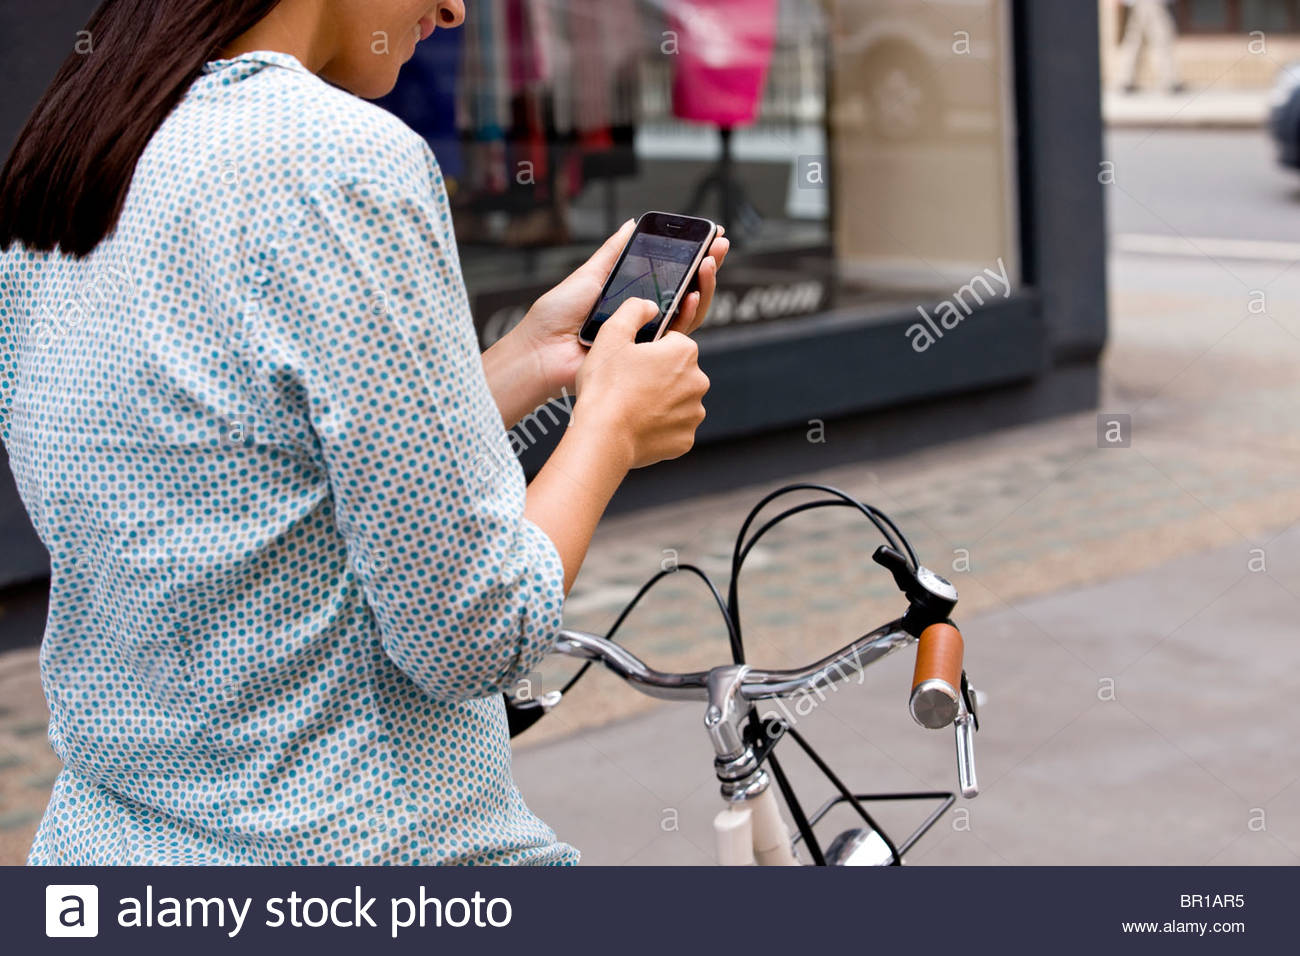 A young woman on a bicycle, looking at a map on her mobile phone - Stock Image